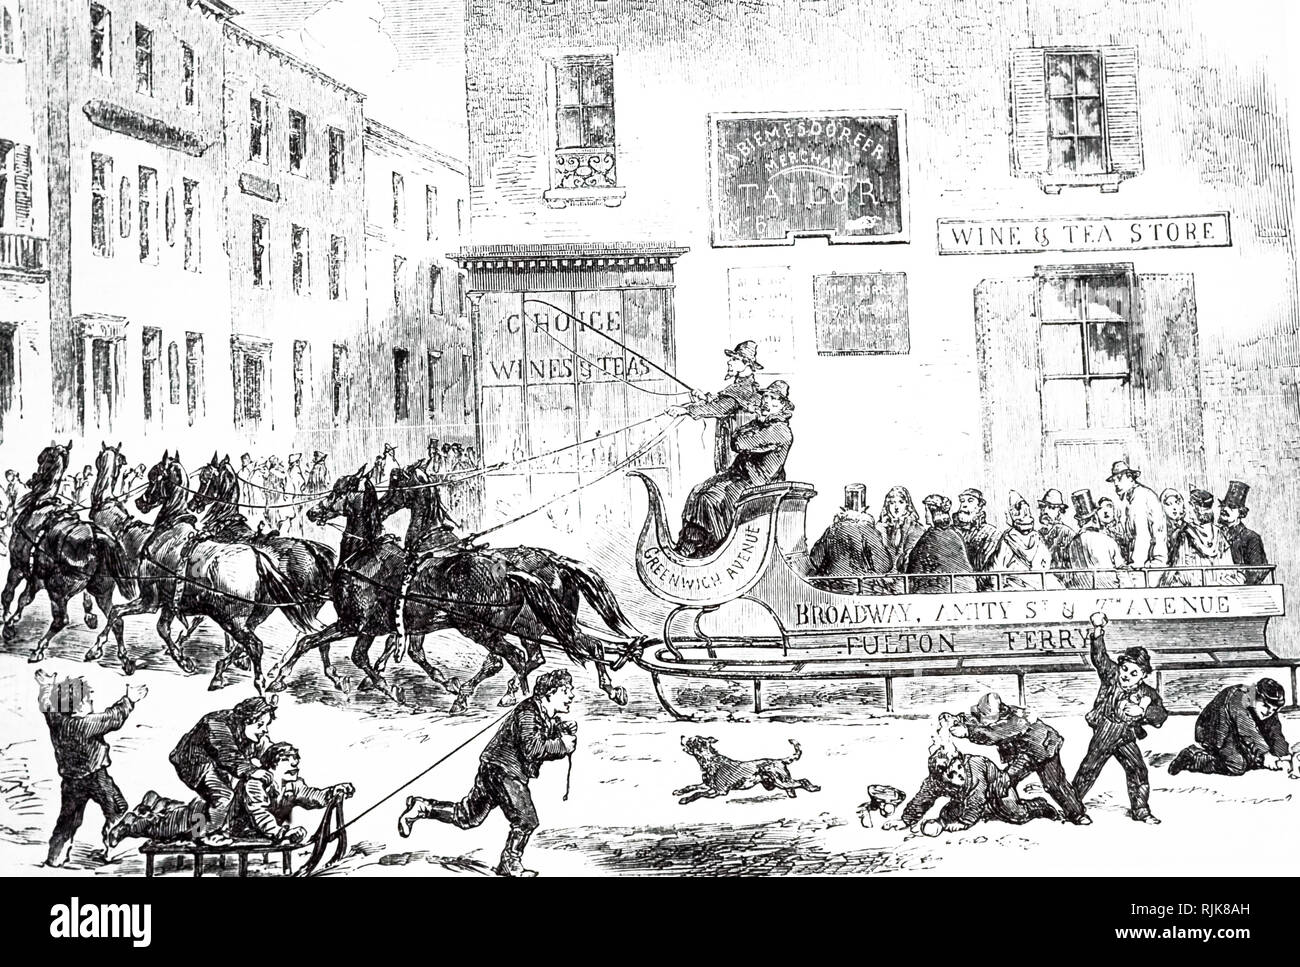 An engraving depicting a horse-drawn sleigh bus in New York. Dated 19th century Stock Photo